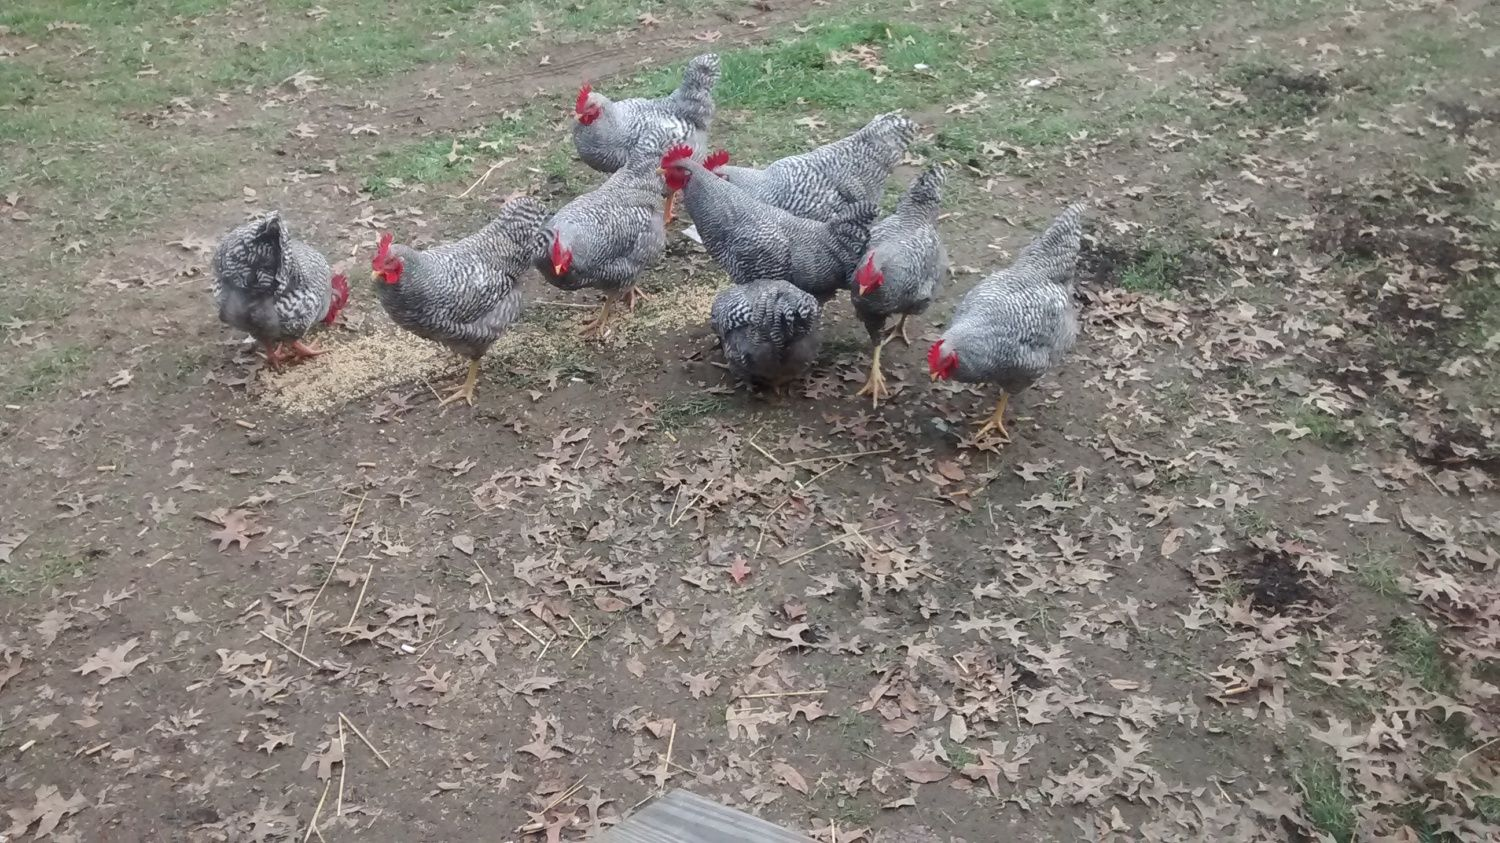 My barred rocks. Pretty sure they're all male